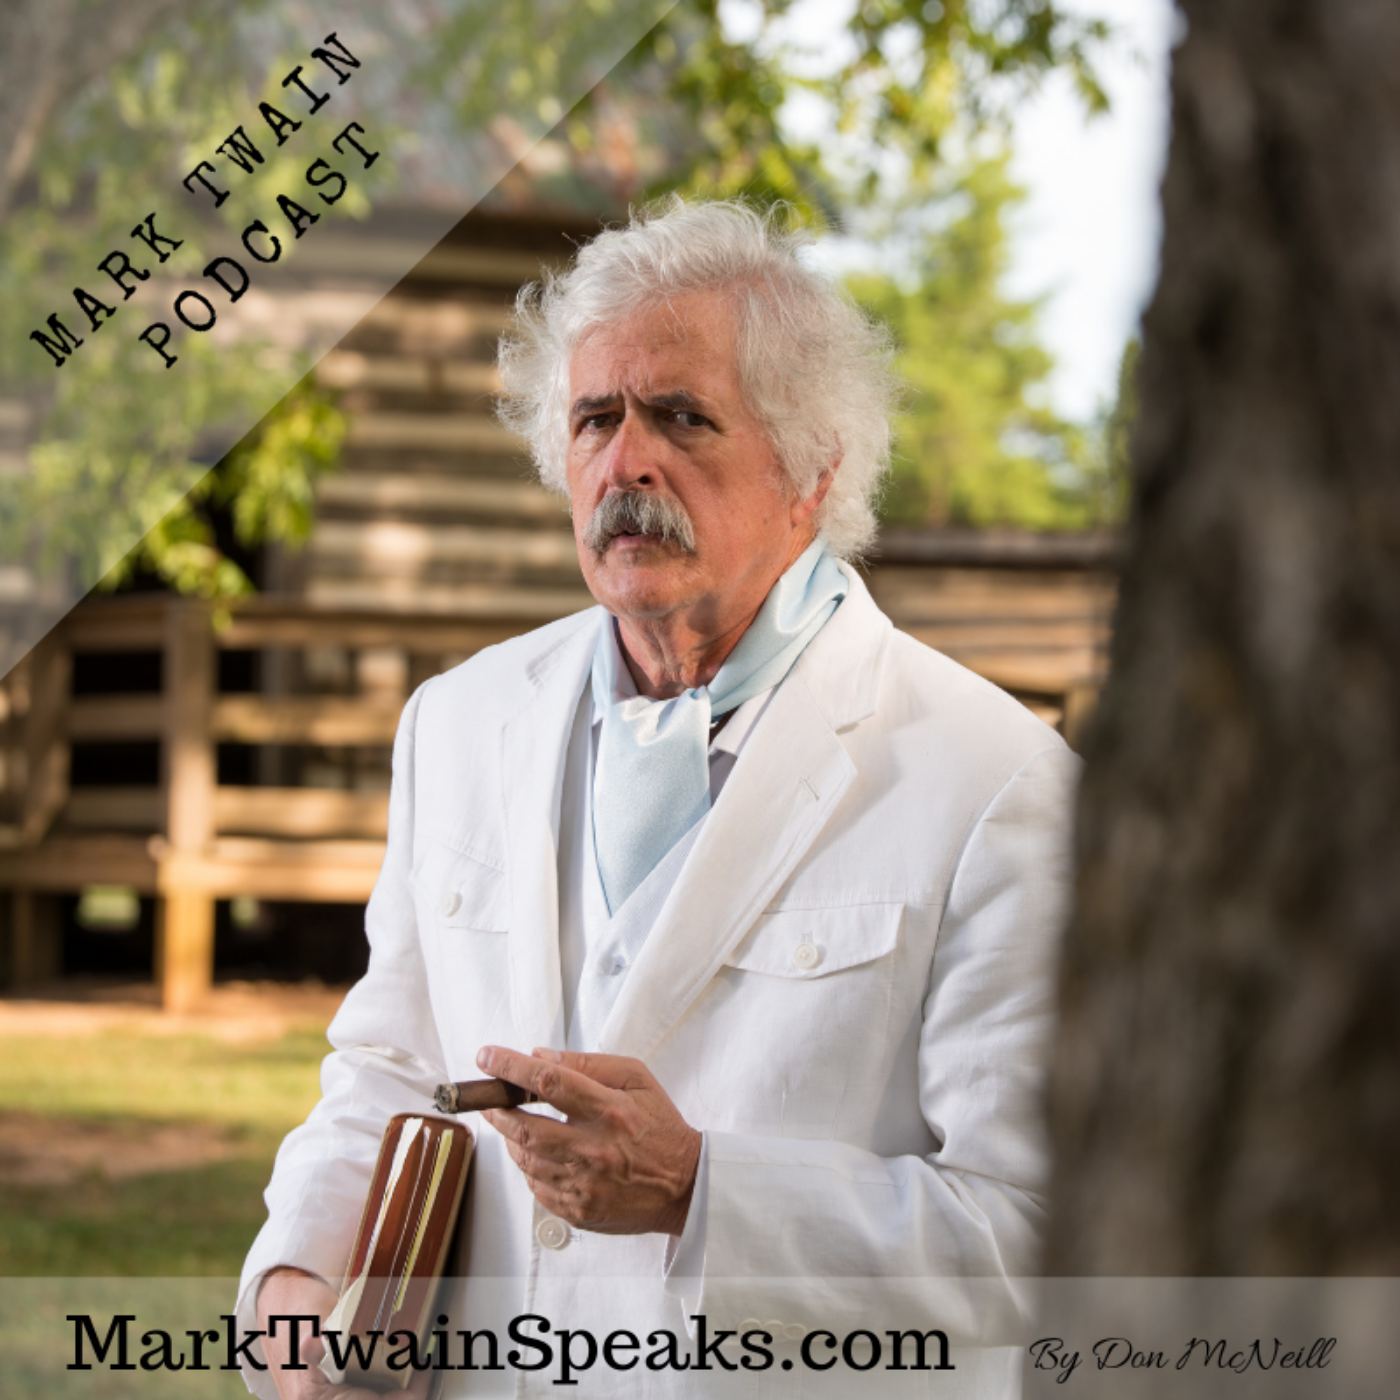 Mark Twain Speaks Podcast